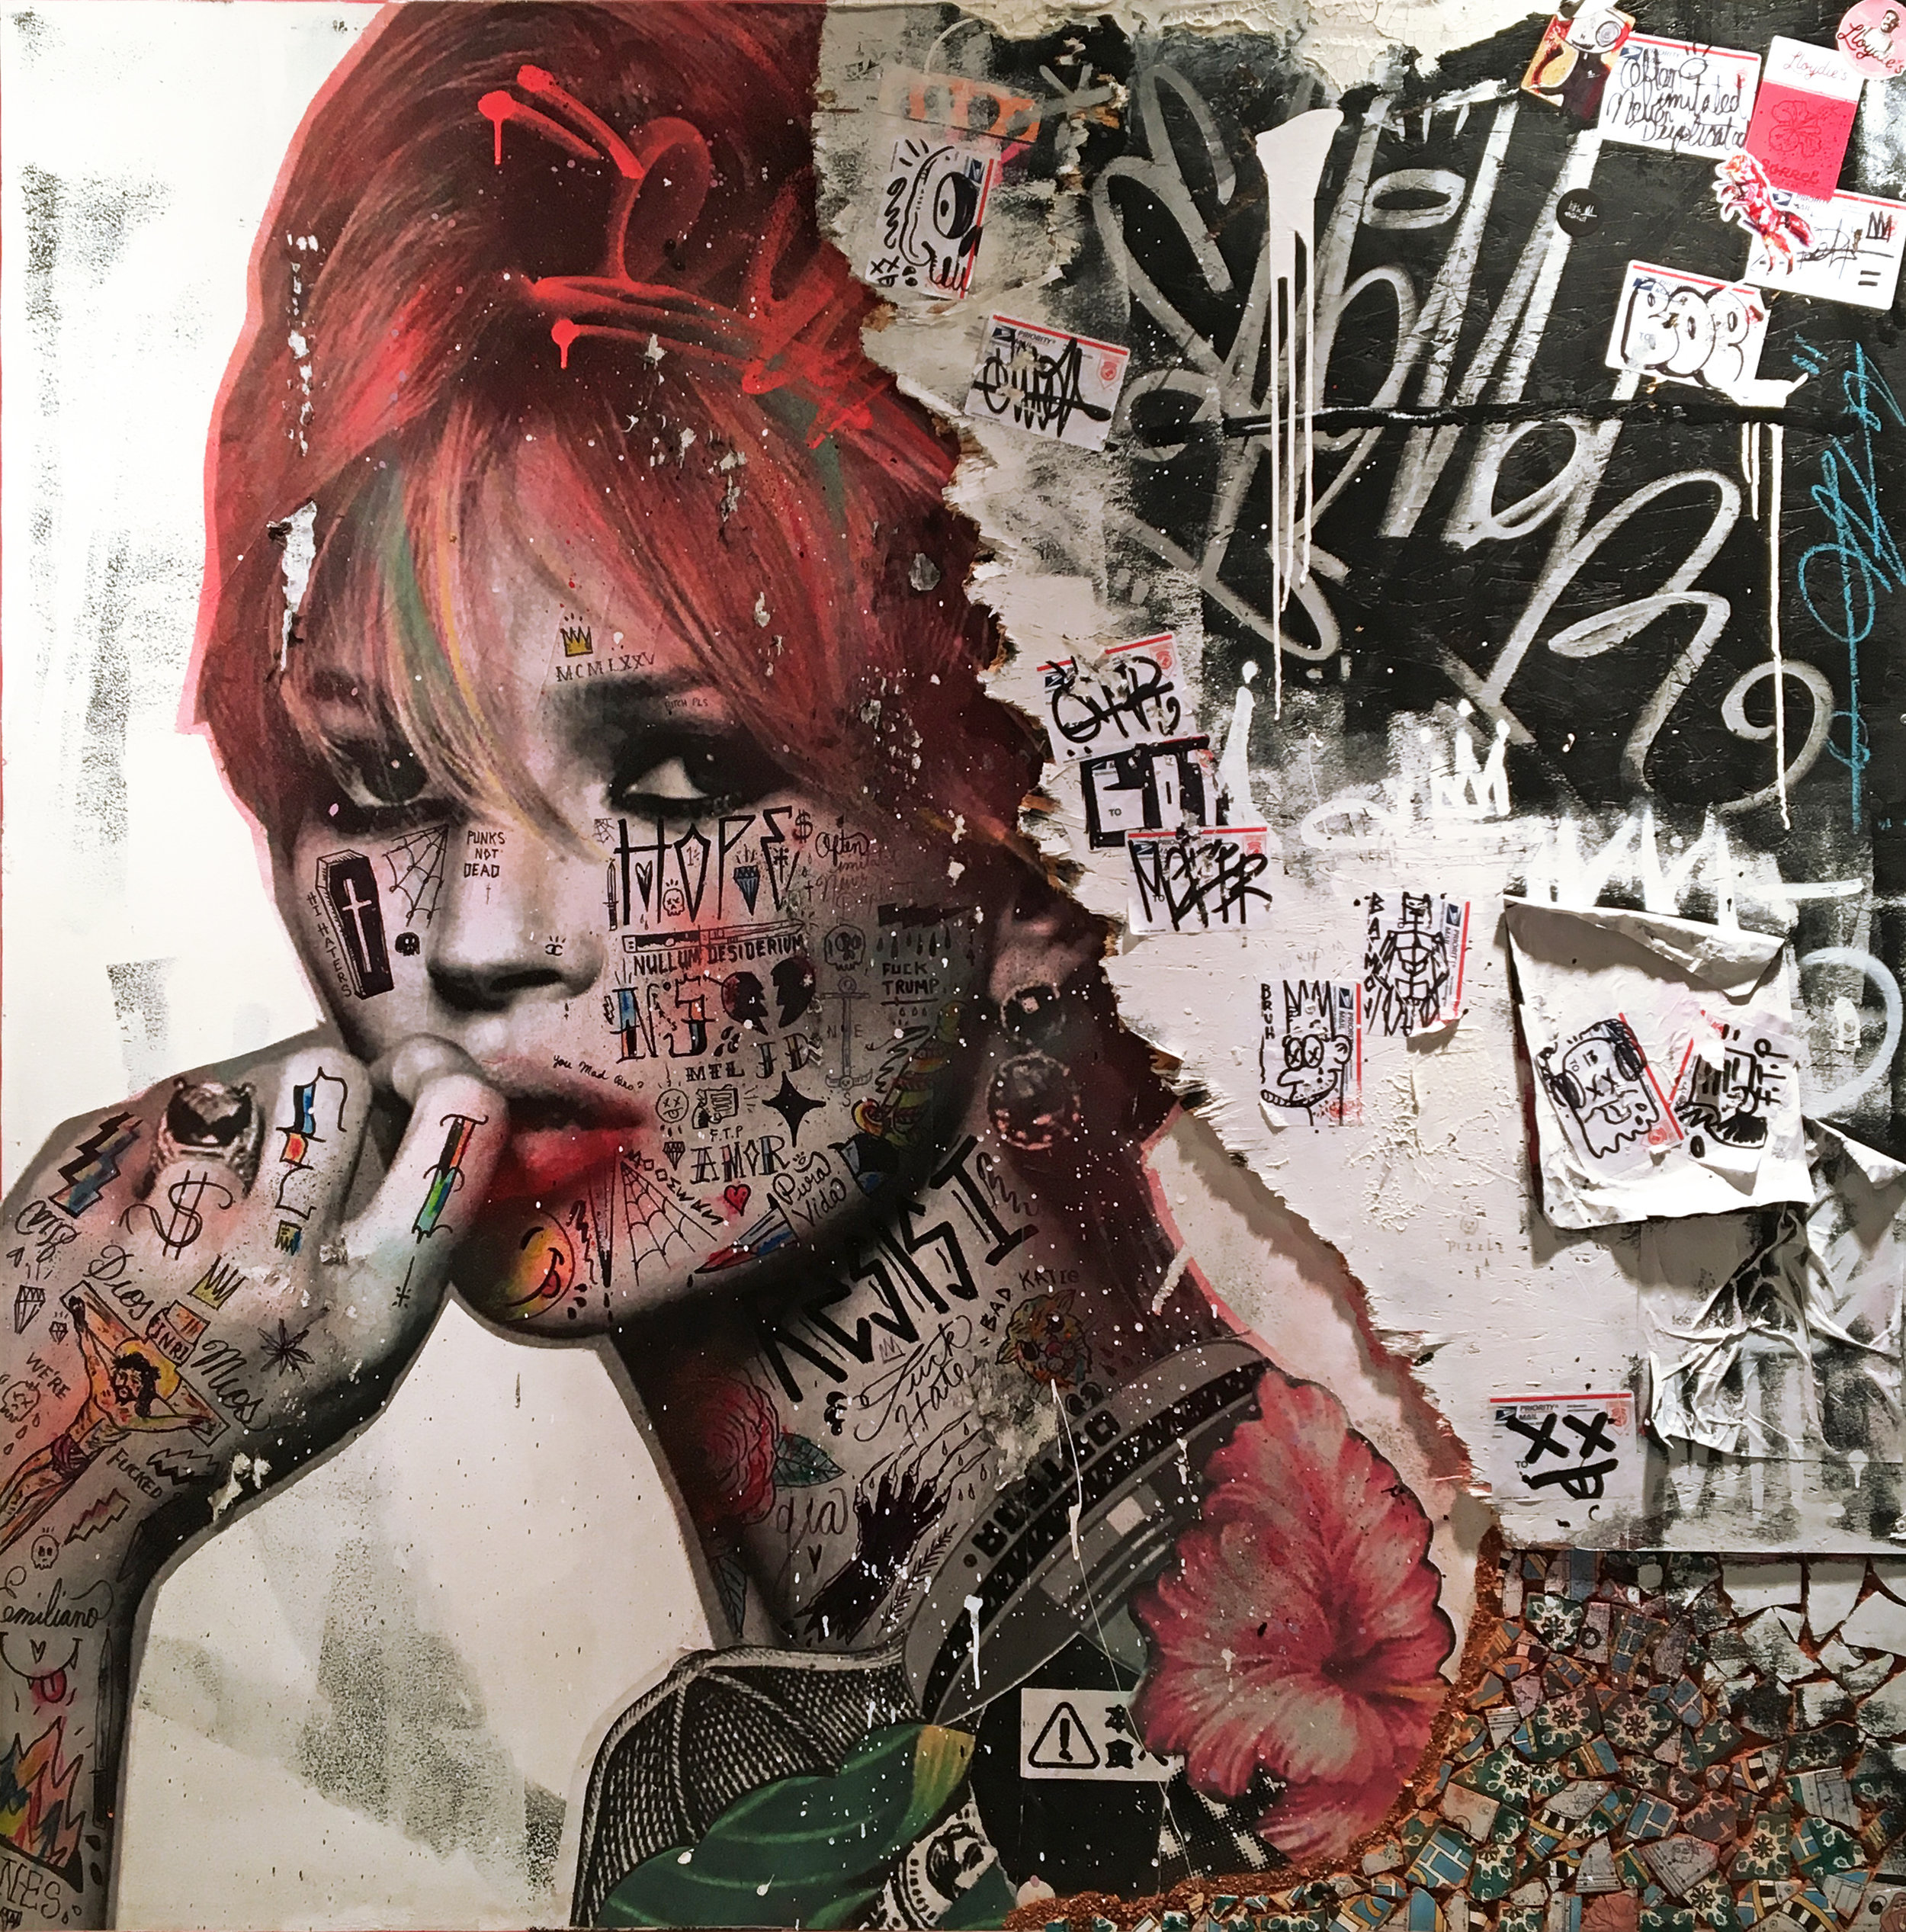 - STIKKI PEACHES | BITCH PLEASE IT'S KATE MOSSMixed media on canvas with reclaimed wood & Tunisian hand painted tiles152 x 152 cm | 60 x 60 in2018